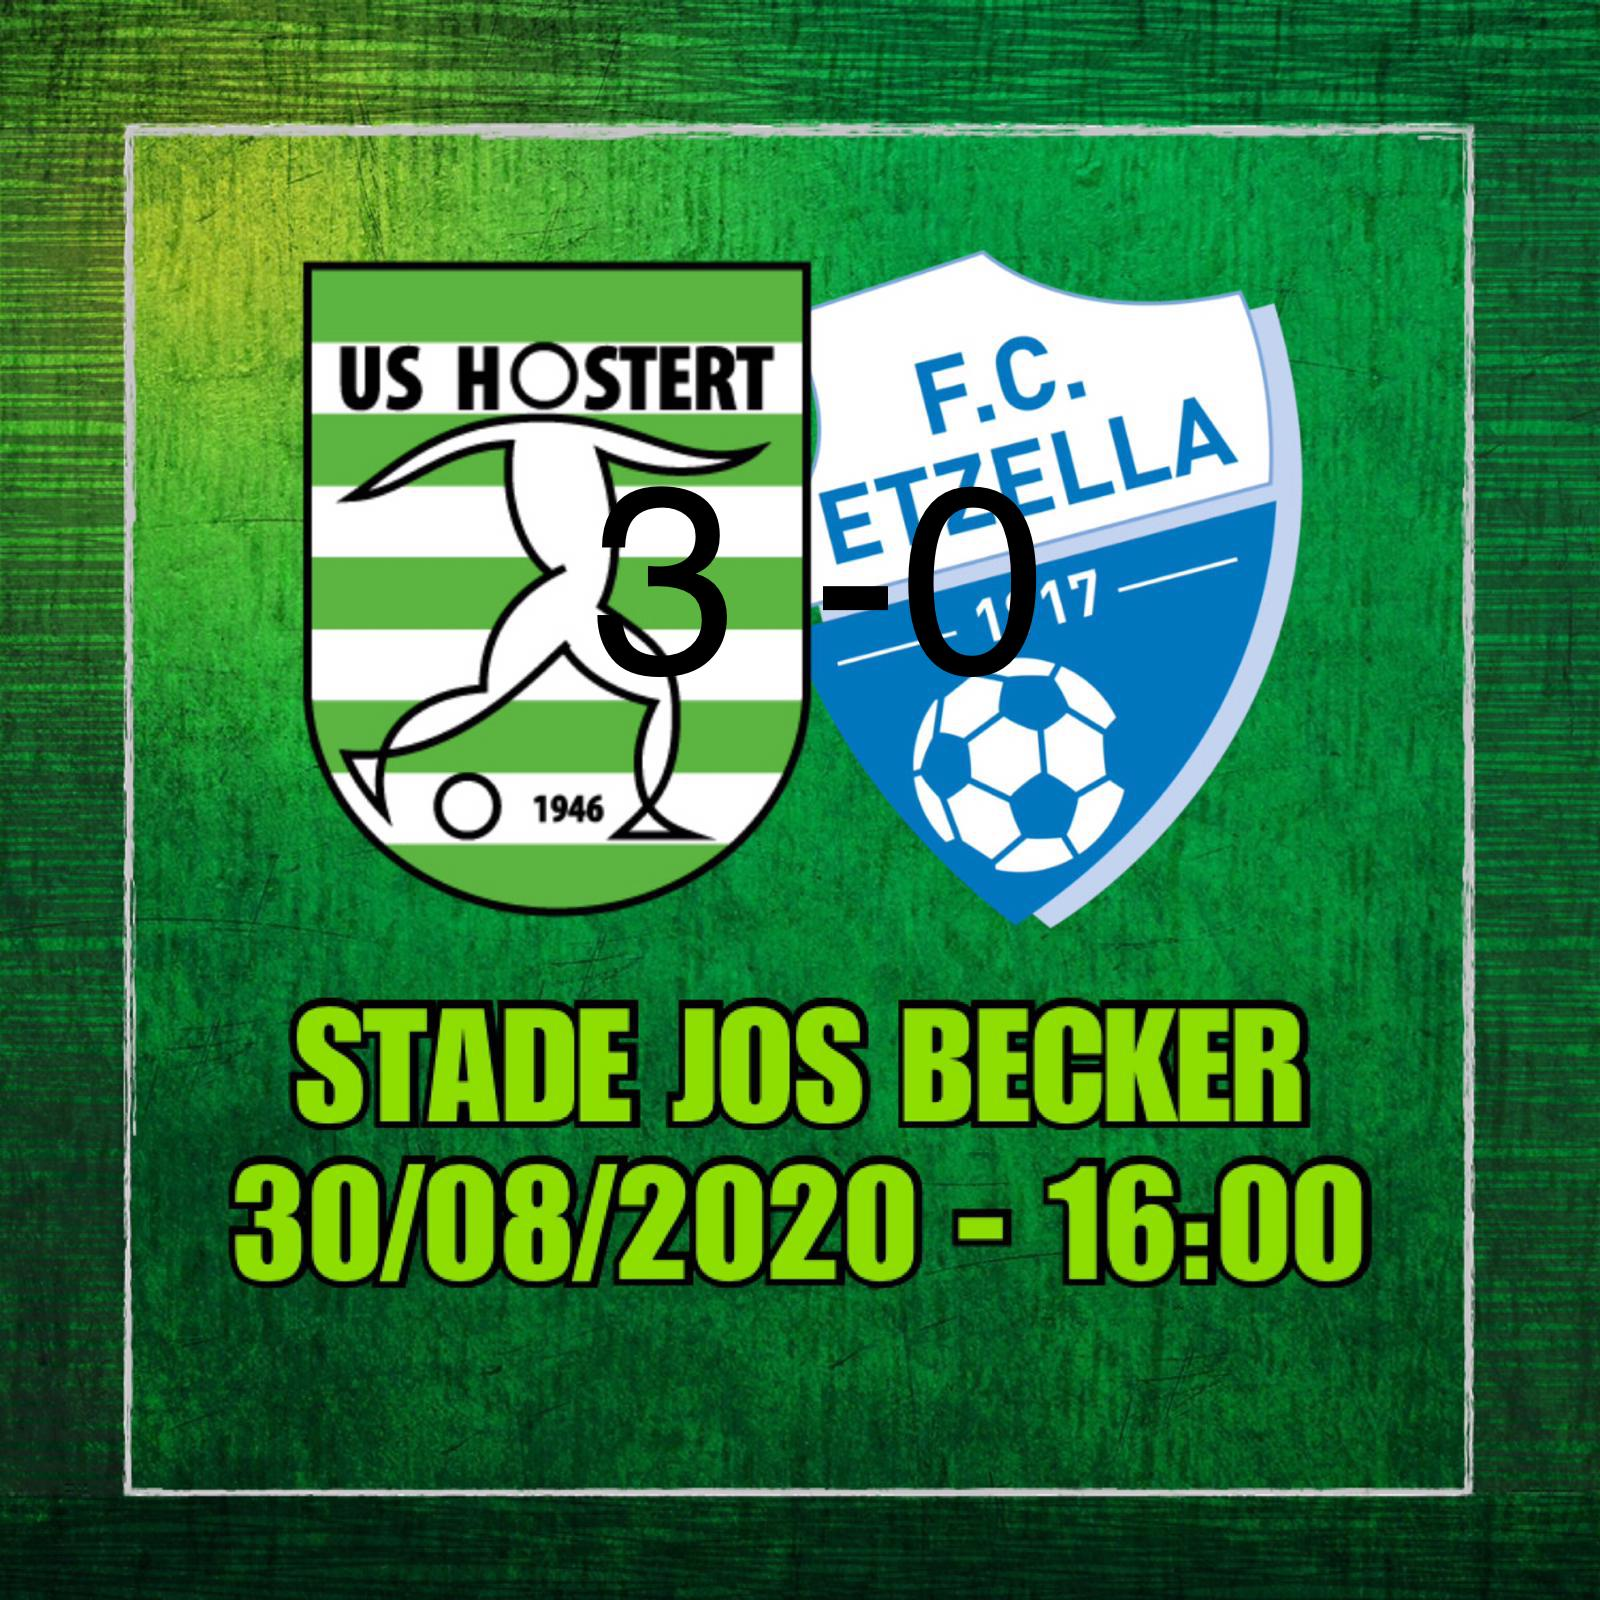 US HOSTERT - Etzella Ettelbruck 3-0 (2-0)